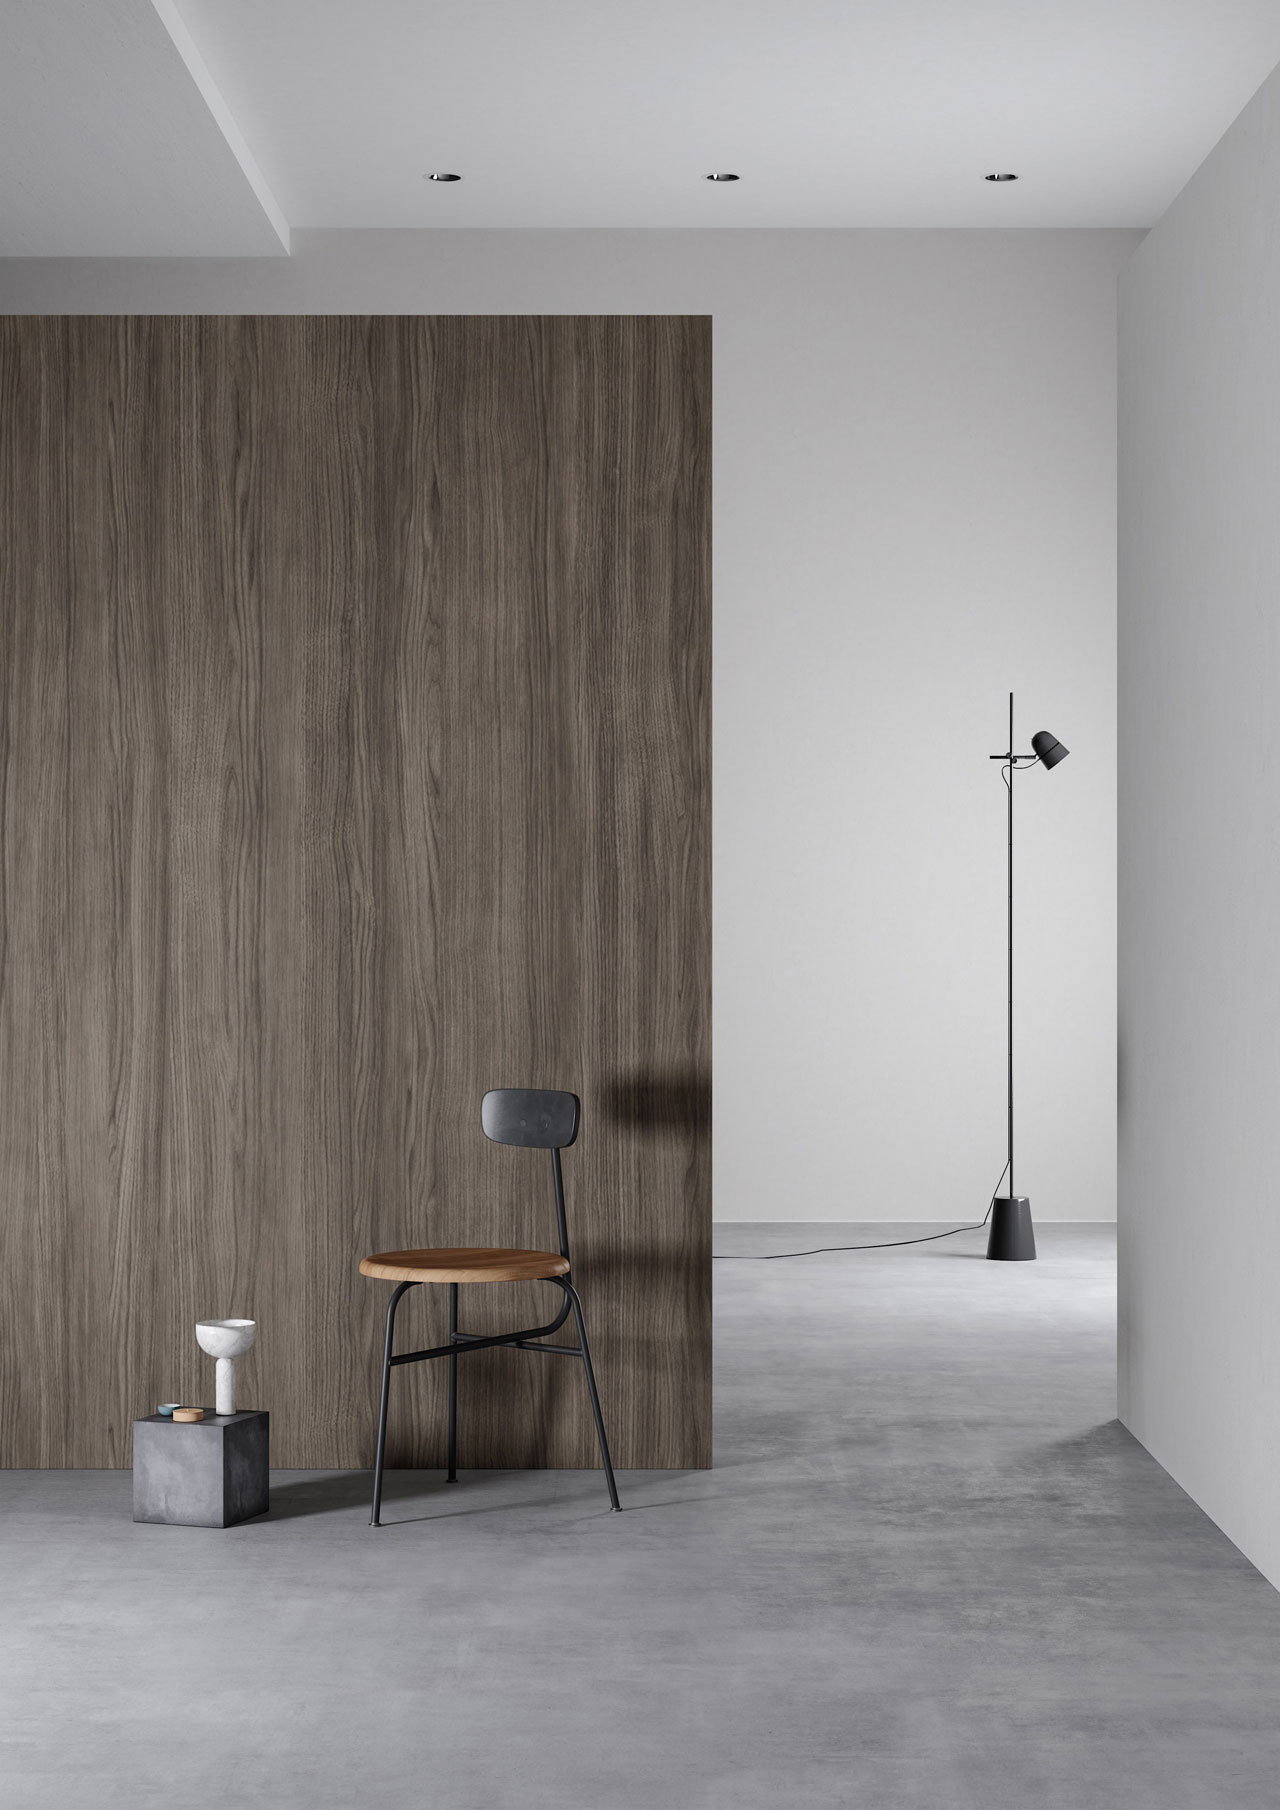 Presented in a great variation of textures, colors and finishes, the 3M™️ DI-NOC™ collection stands out as an innovative and sustainable solution, allowing the continuous reuse of furniture and remodeling of spaces beyond imagination.